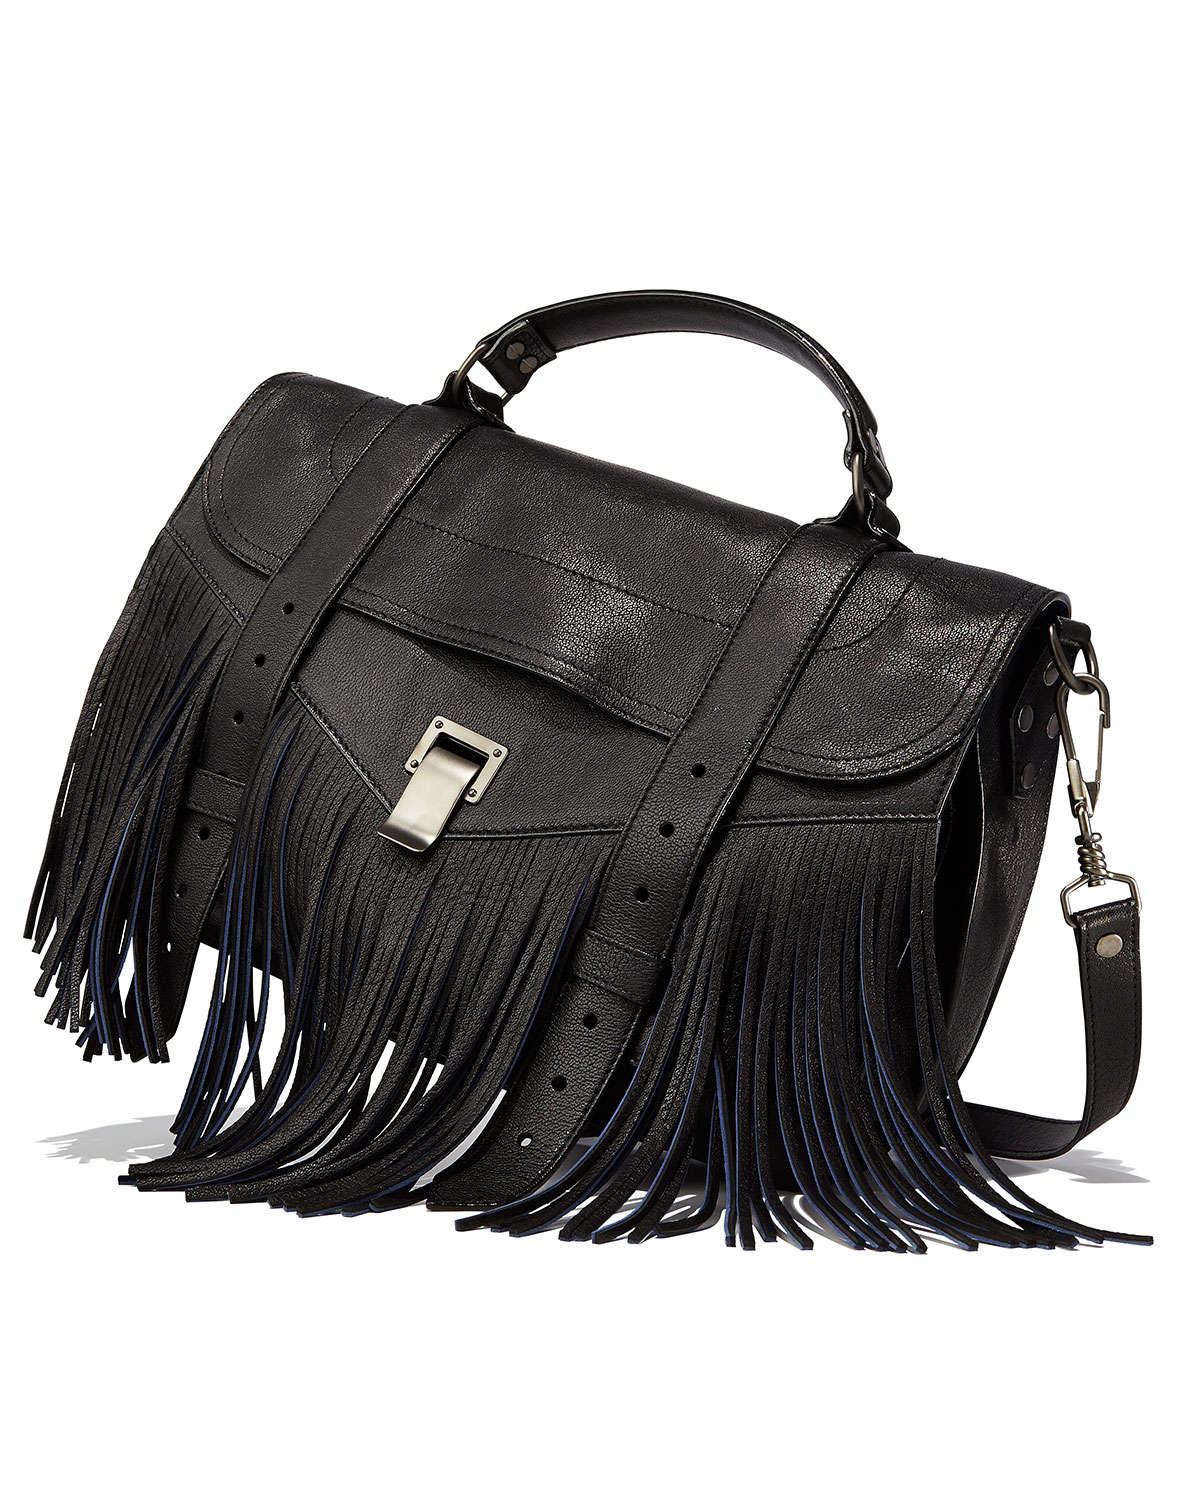 Proenza Shouler Bag